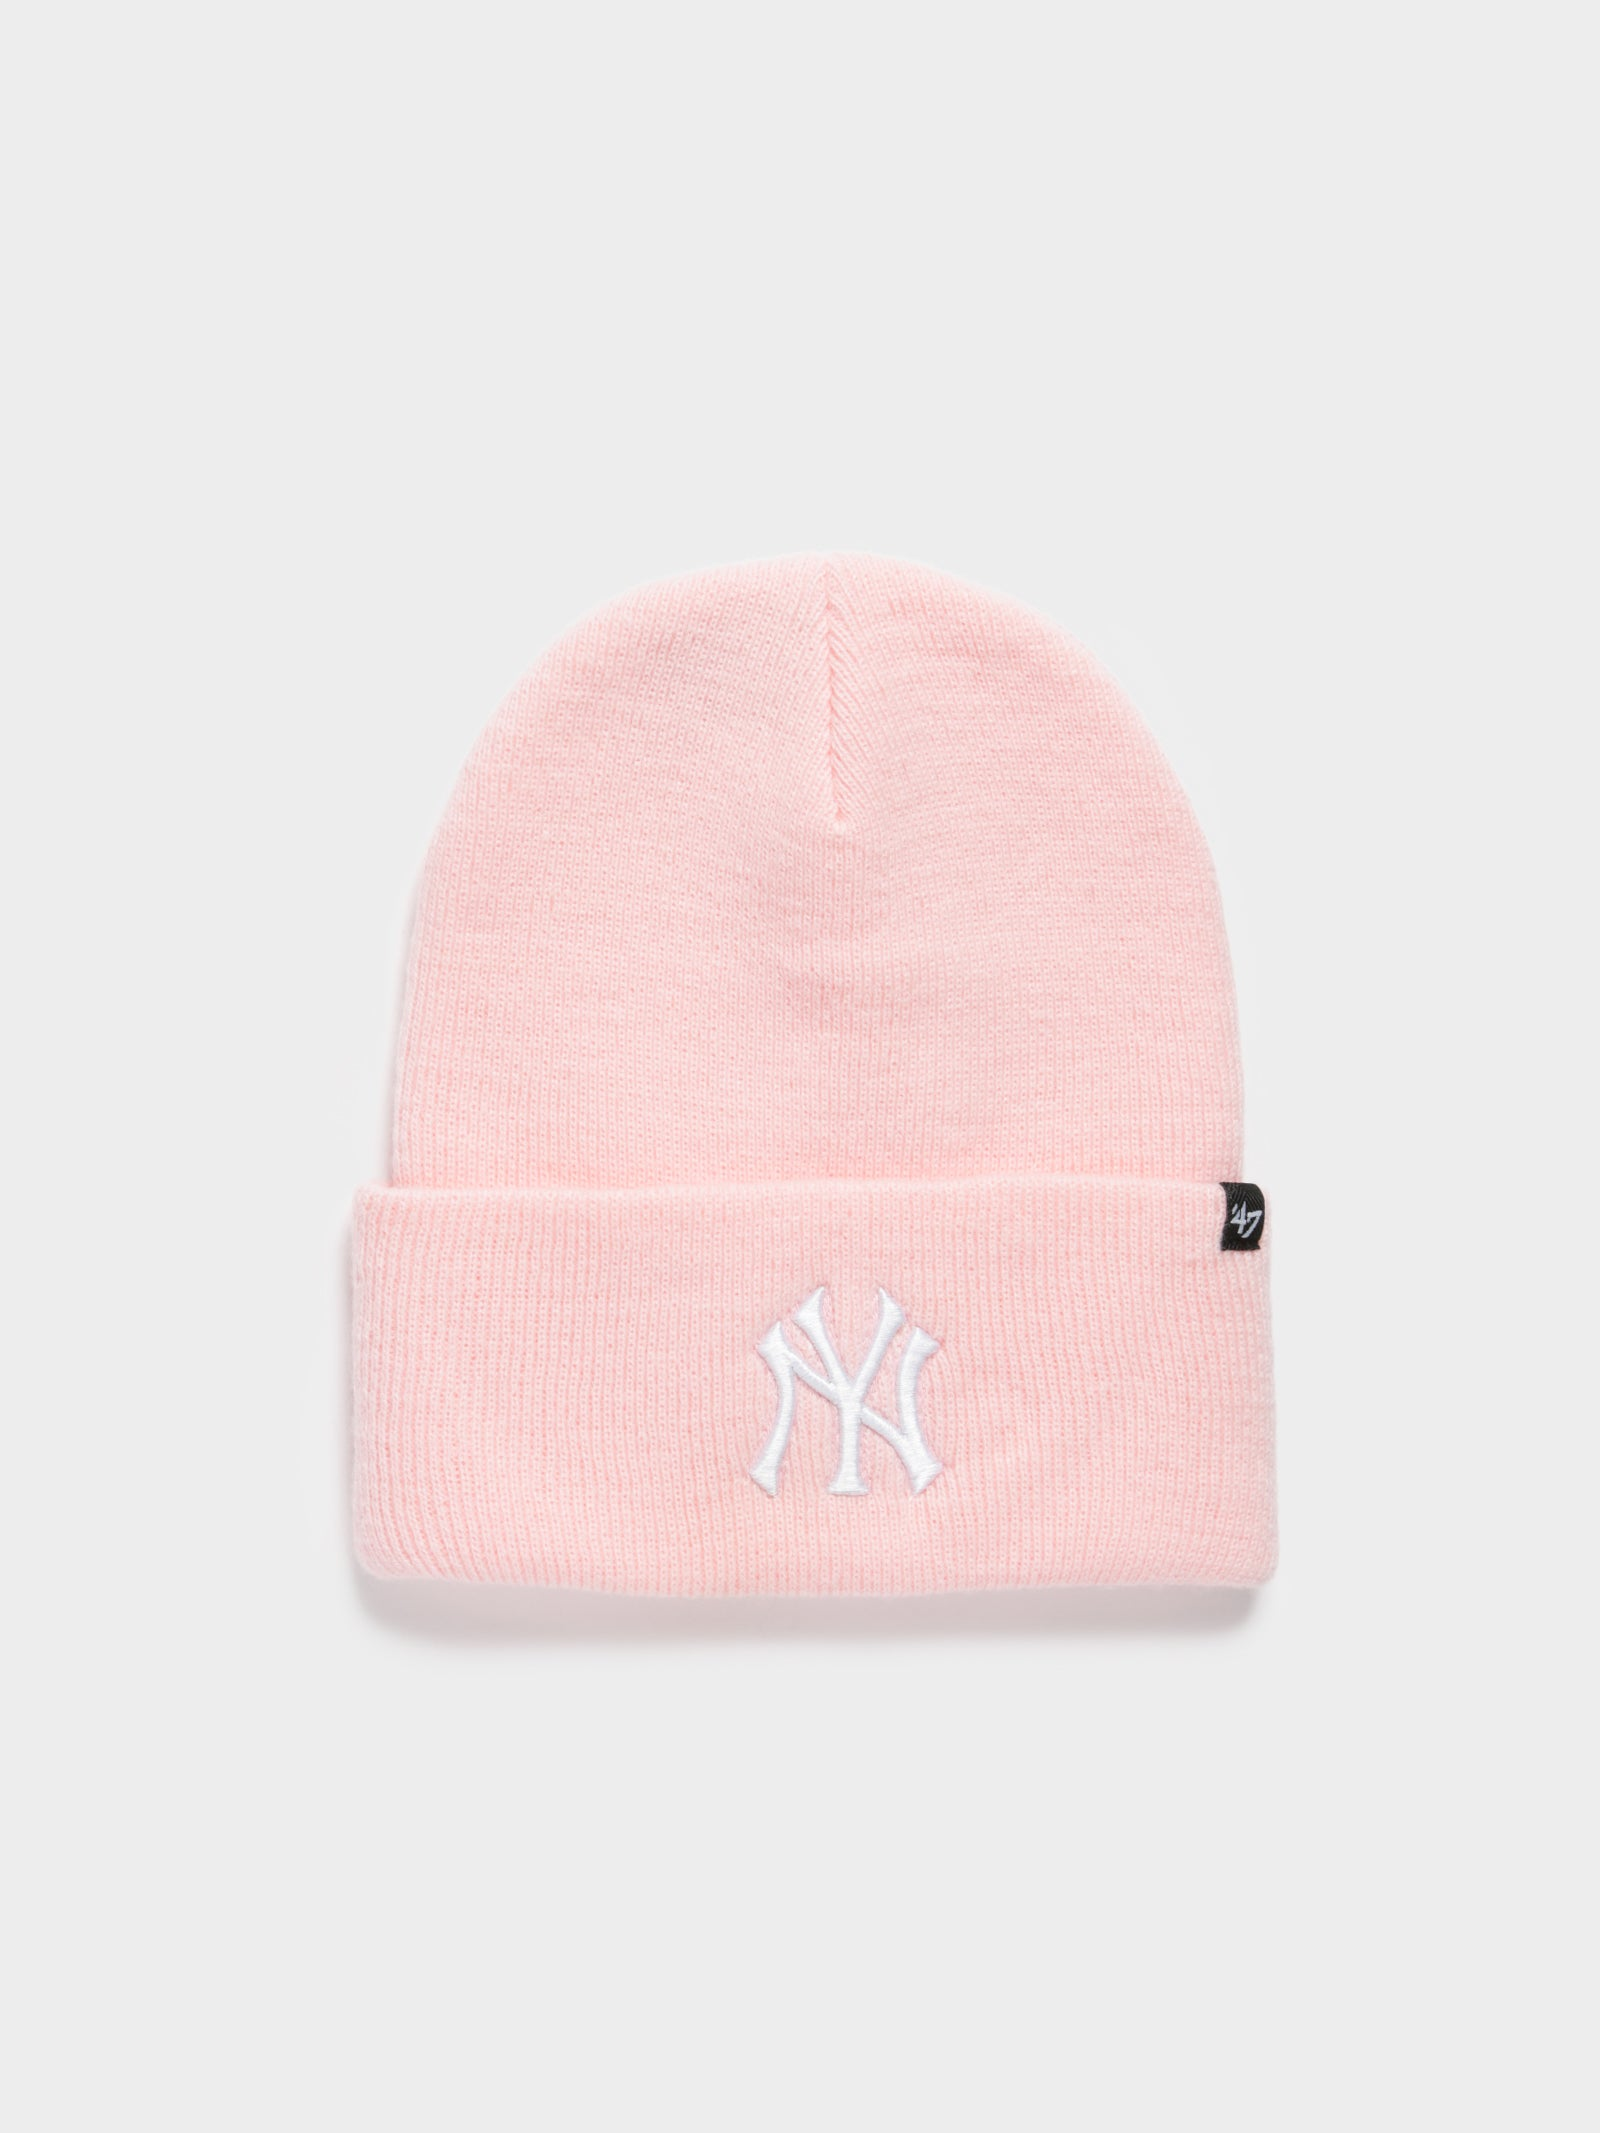 NY Haymaker Beanie in Pink